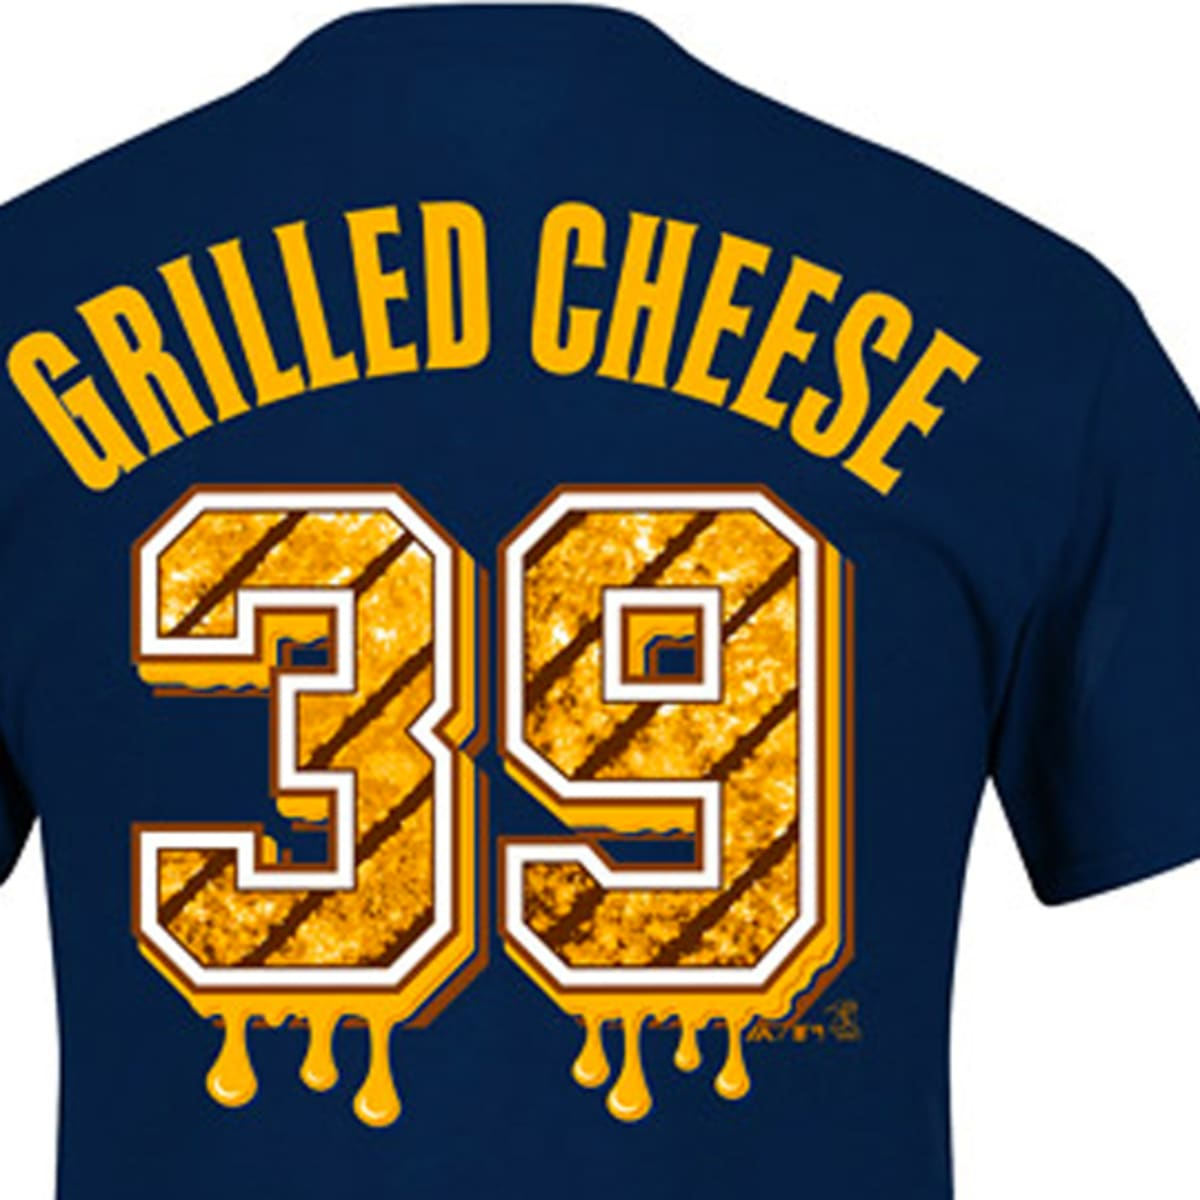 Jason Grilli Grilled Cheese shirts